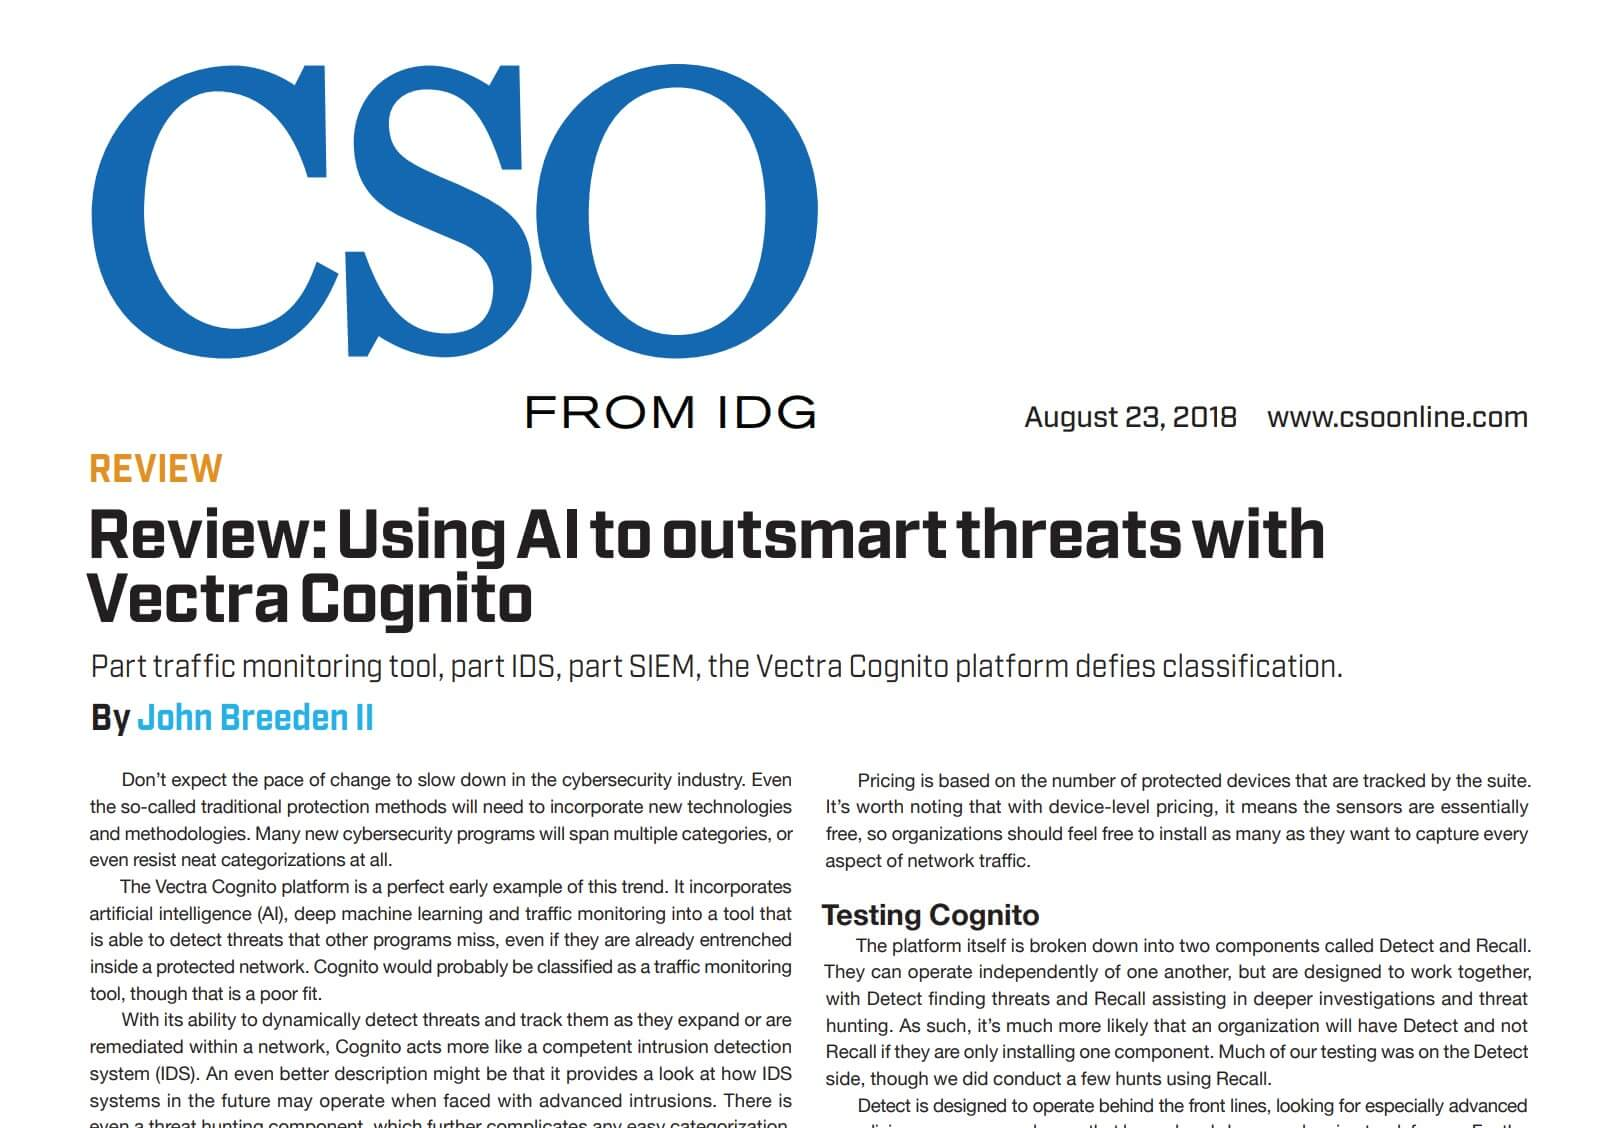 Image of first page of CSO Review: Using AI to outsmart threats with Vectra Cognito